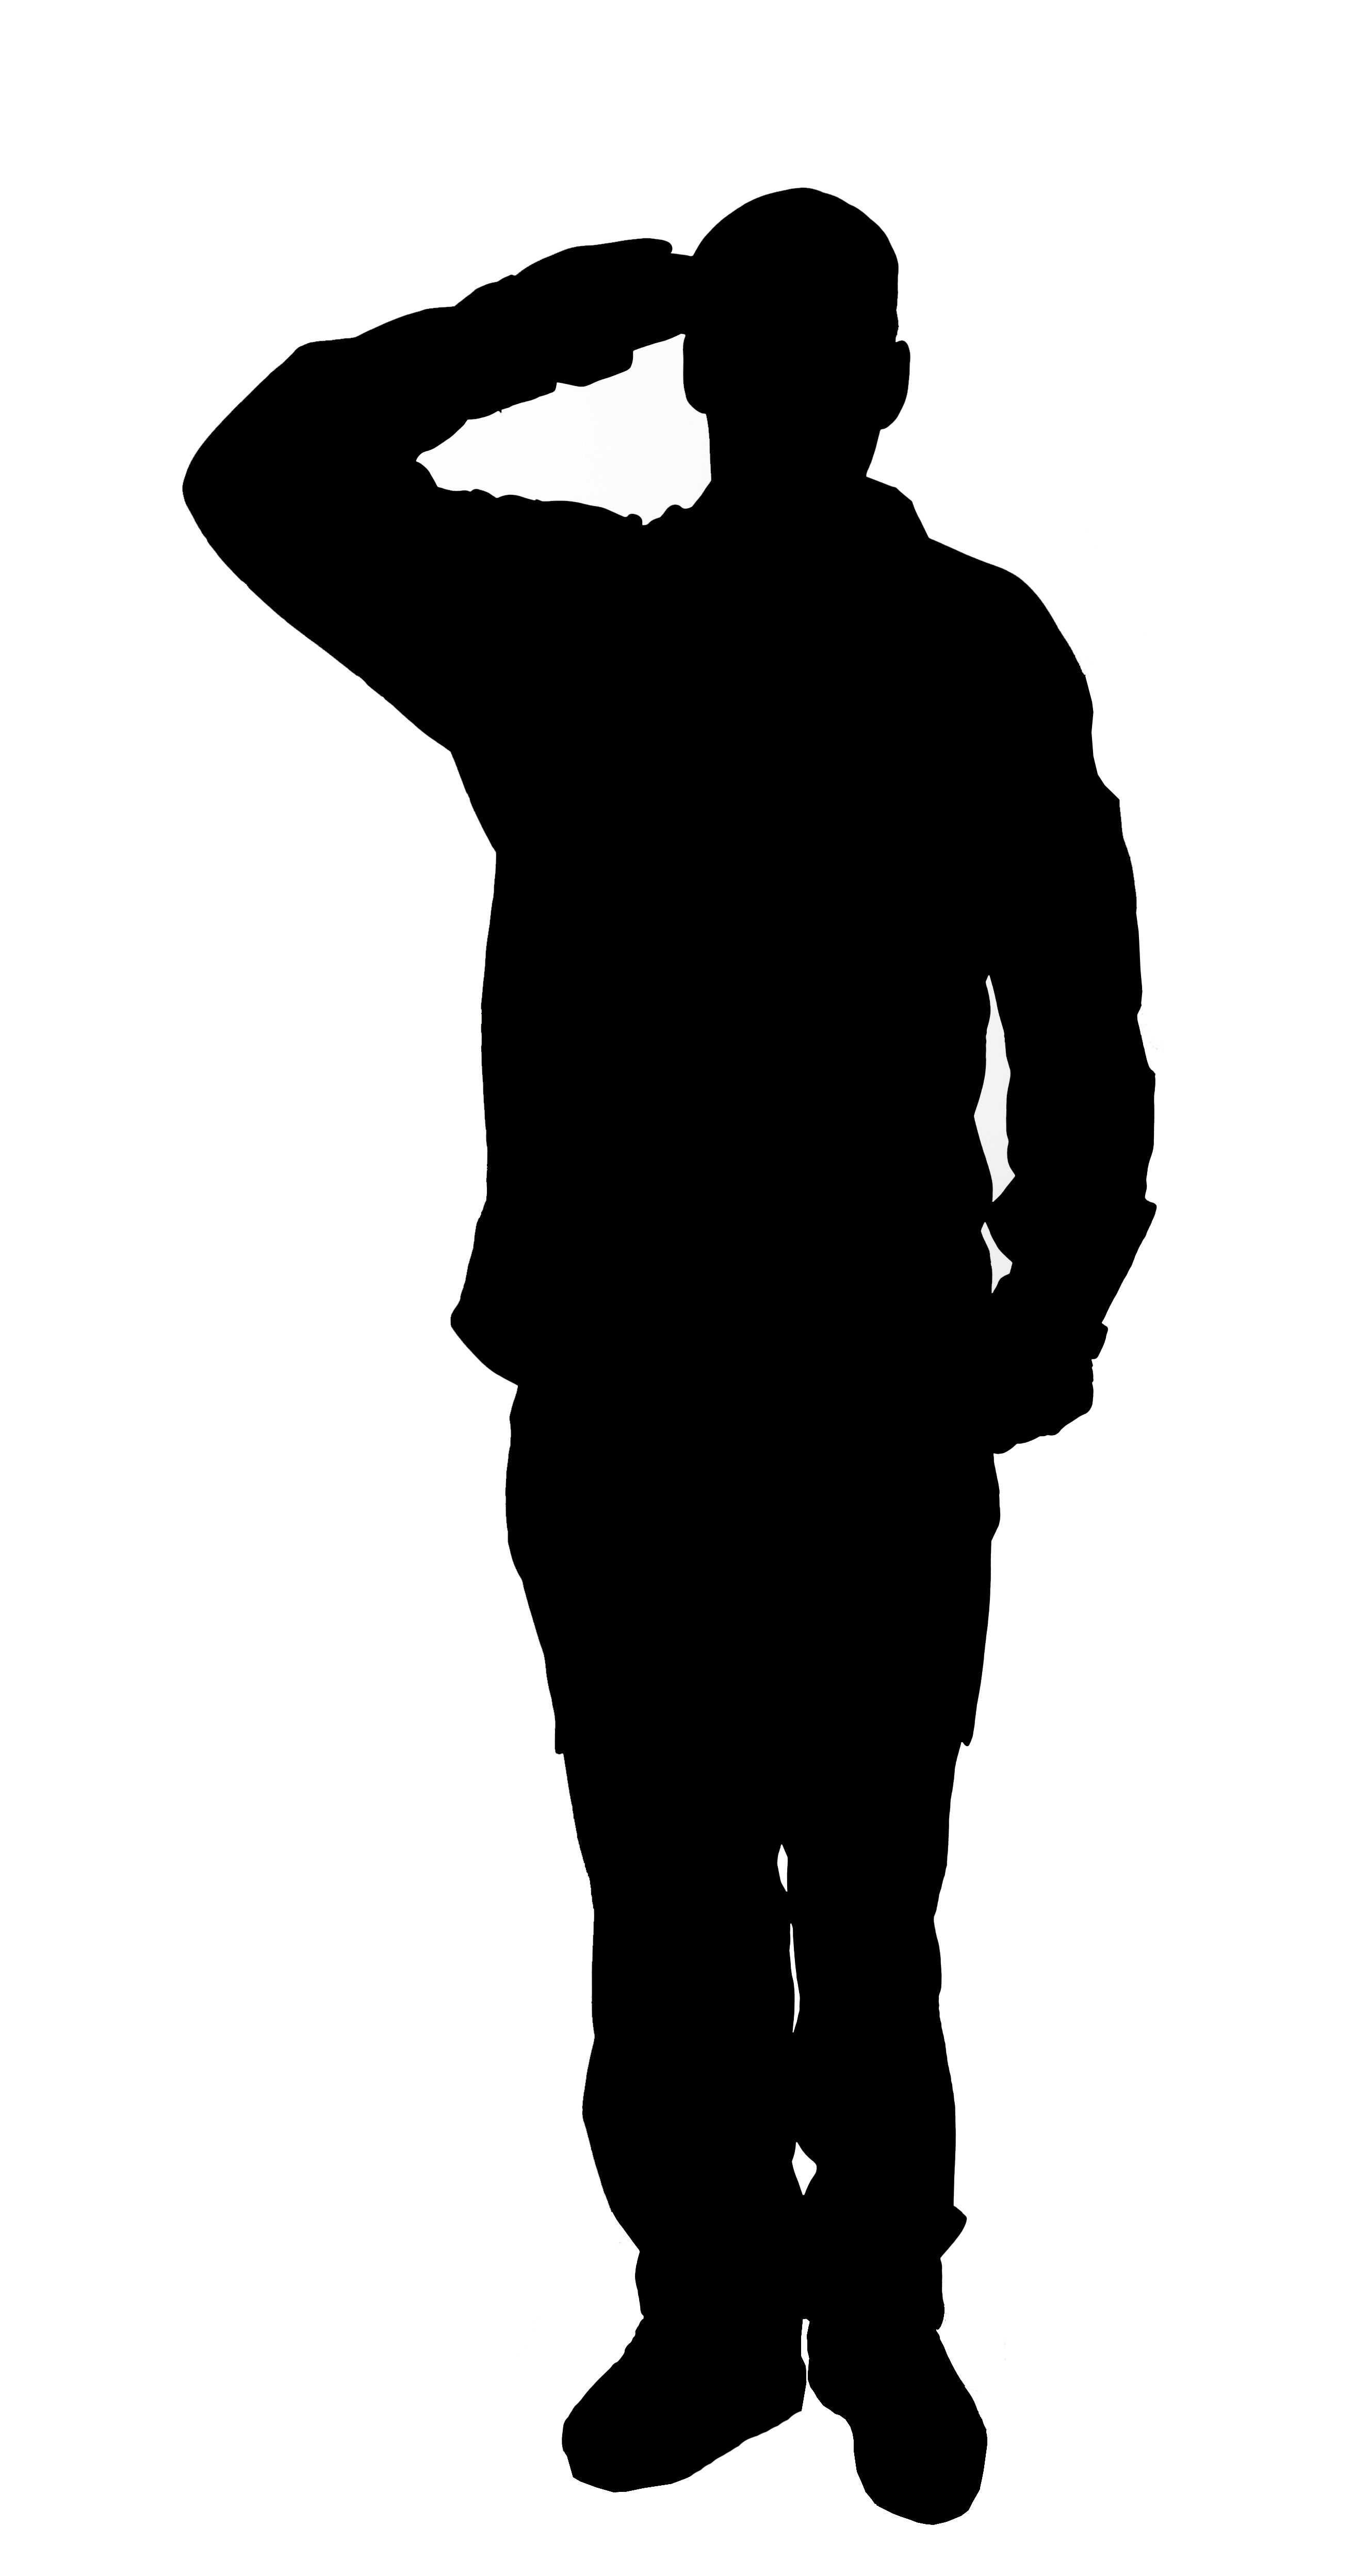 Soldier Silhouette ...draw on wall ....paint in black paint ...